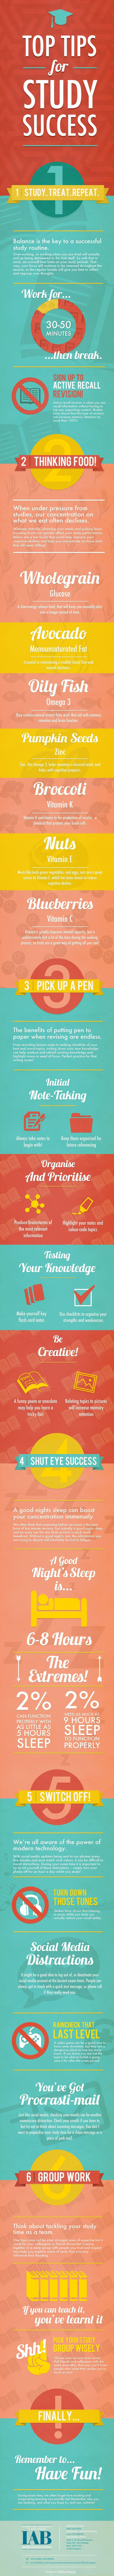 How to Form Good Study Habits. (original image via: iab.org.uk)